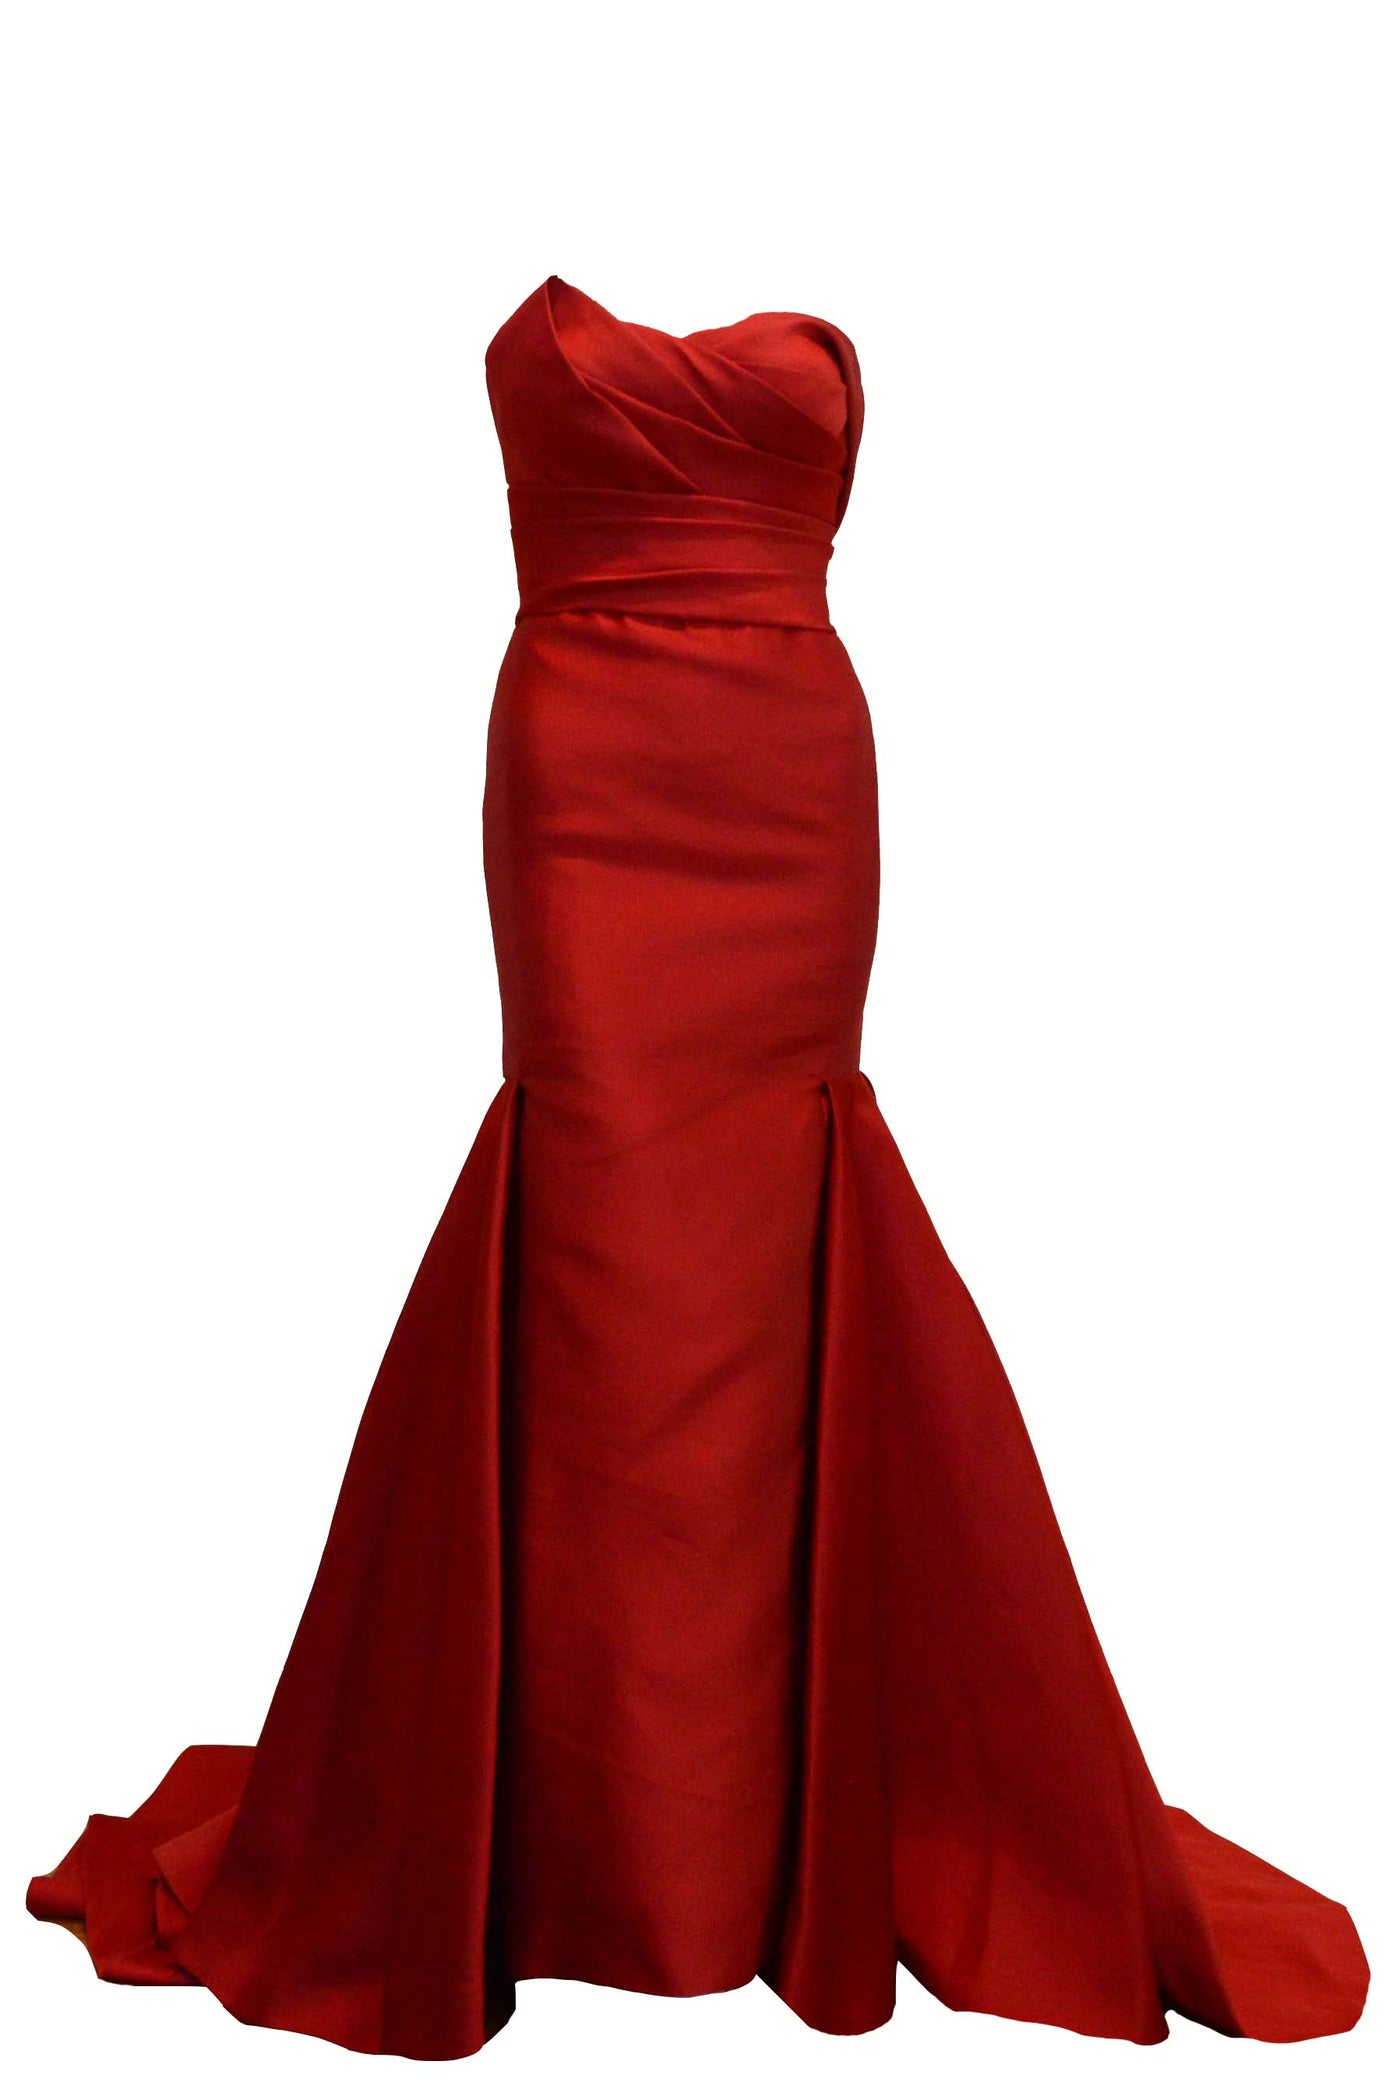 Sale: Adrian Gan Red Strapless Pleated Mermaid Gown